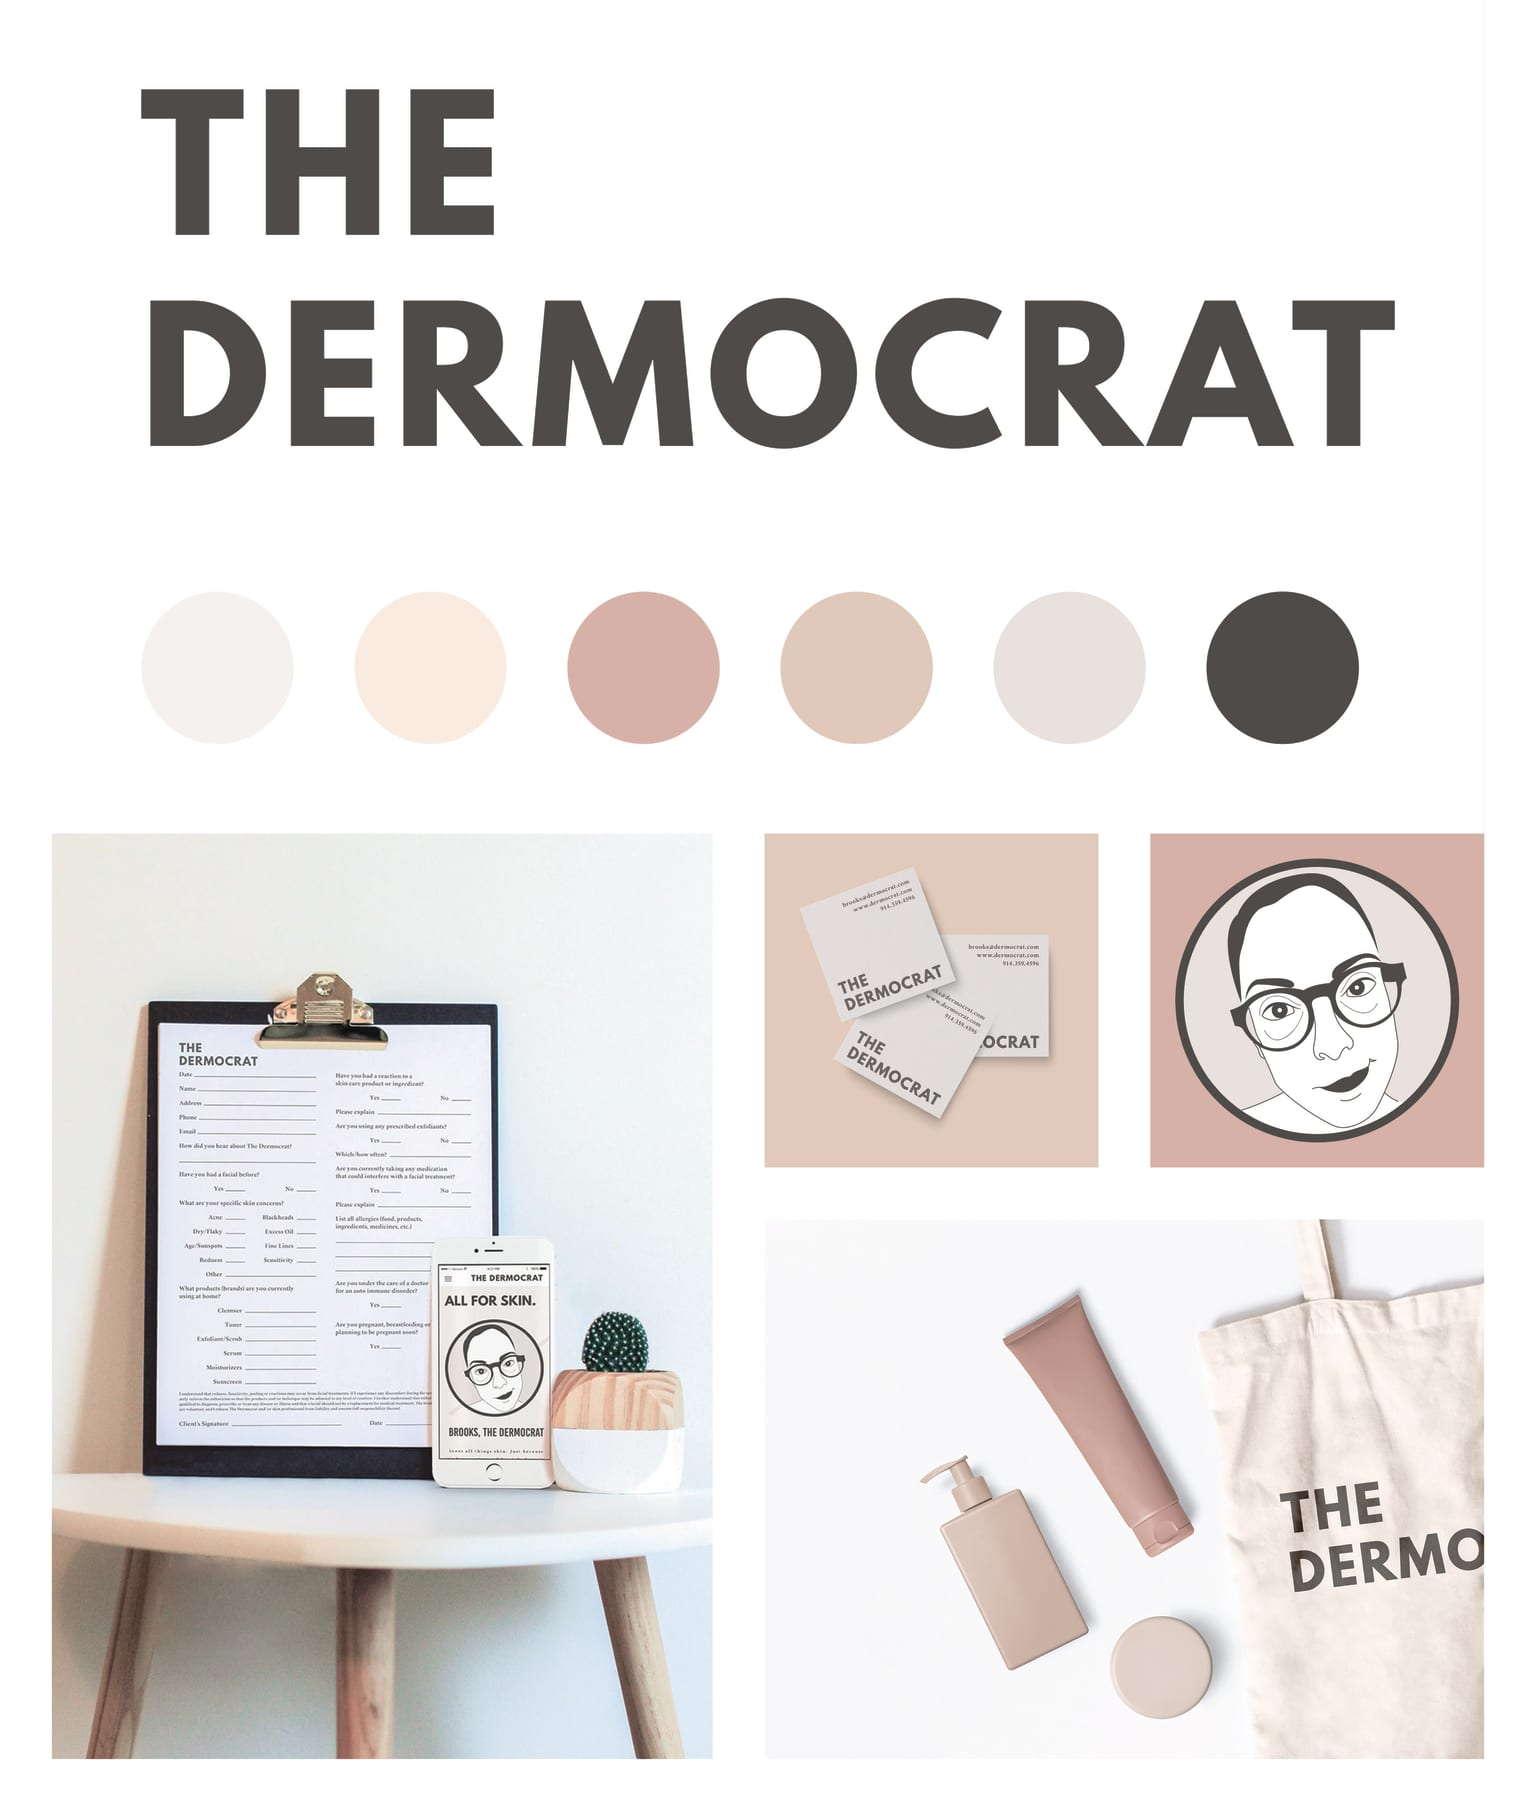 The Dermocrat Website Redesign